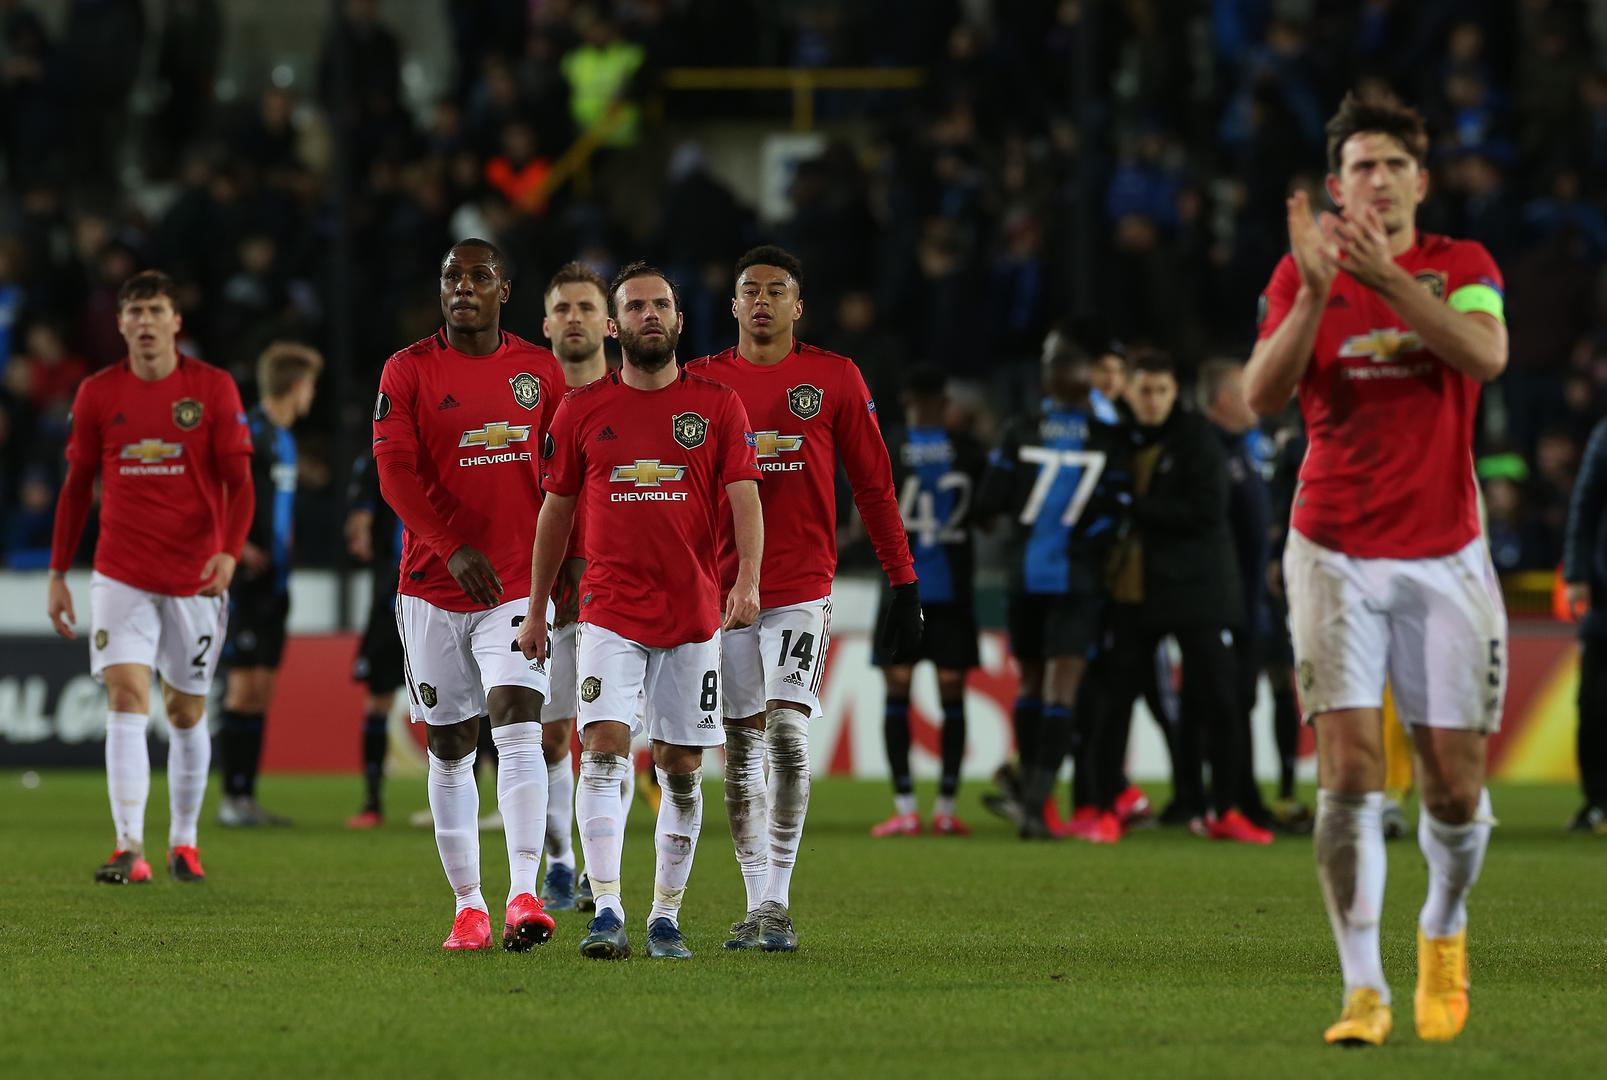 Juan Mata, Odion Ighalo, Jesse Lingard and Luke Shaw walk off the pitch after Manchester United's 1-1 draw with Club Brugge